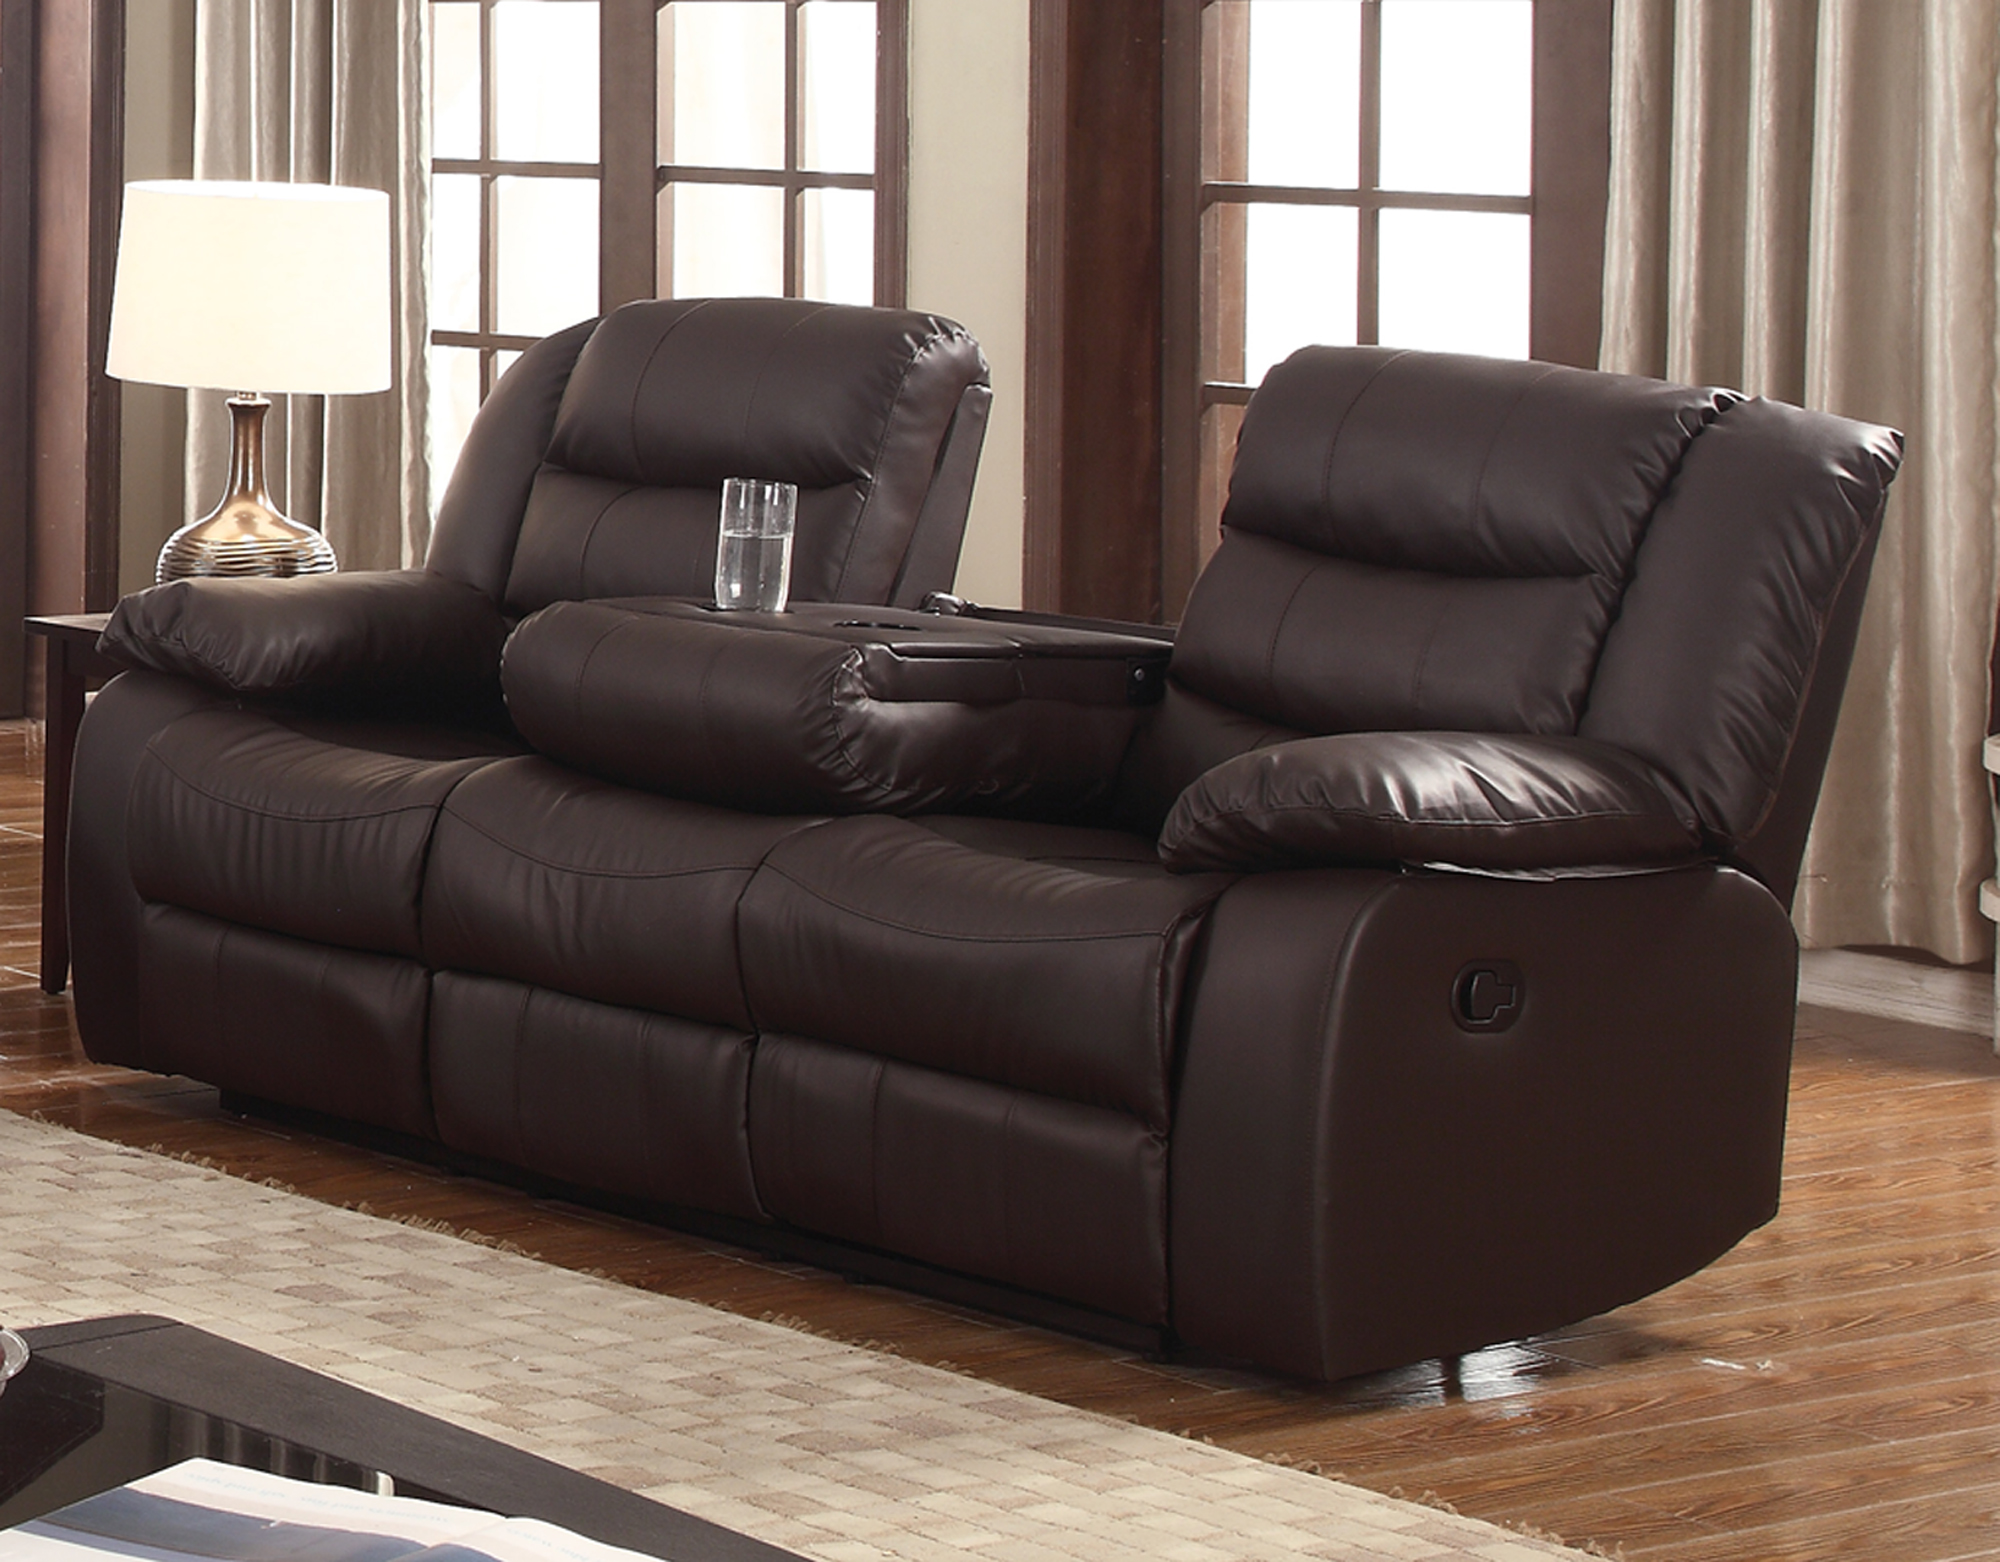 sc 1 st  Walmart : sectional recliners - Sectionals, Sofas & Couches